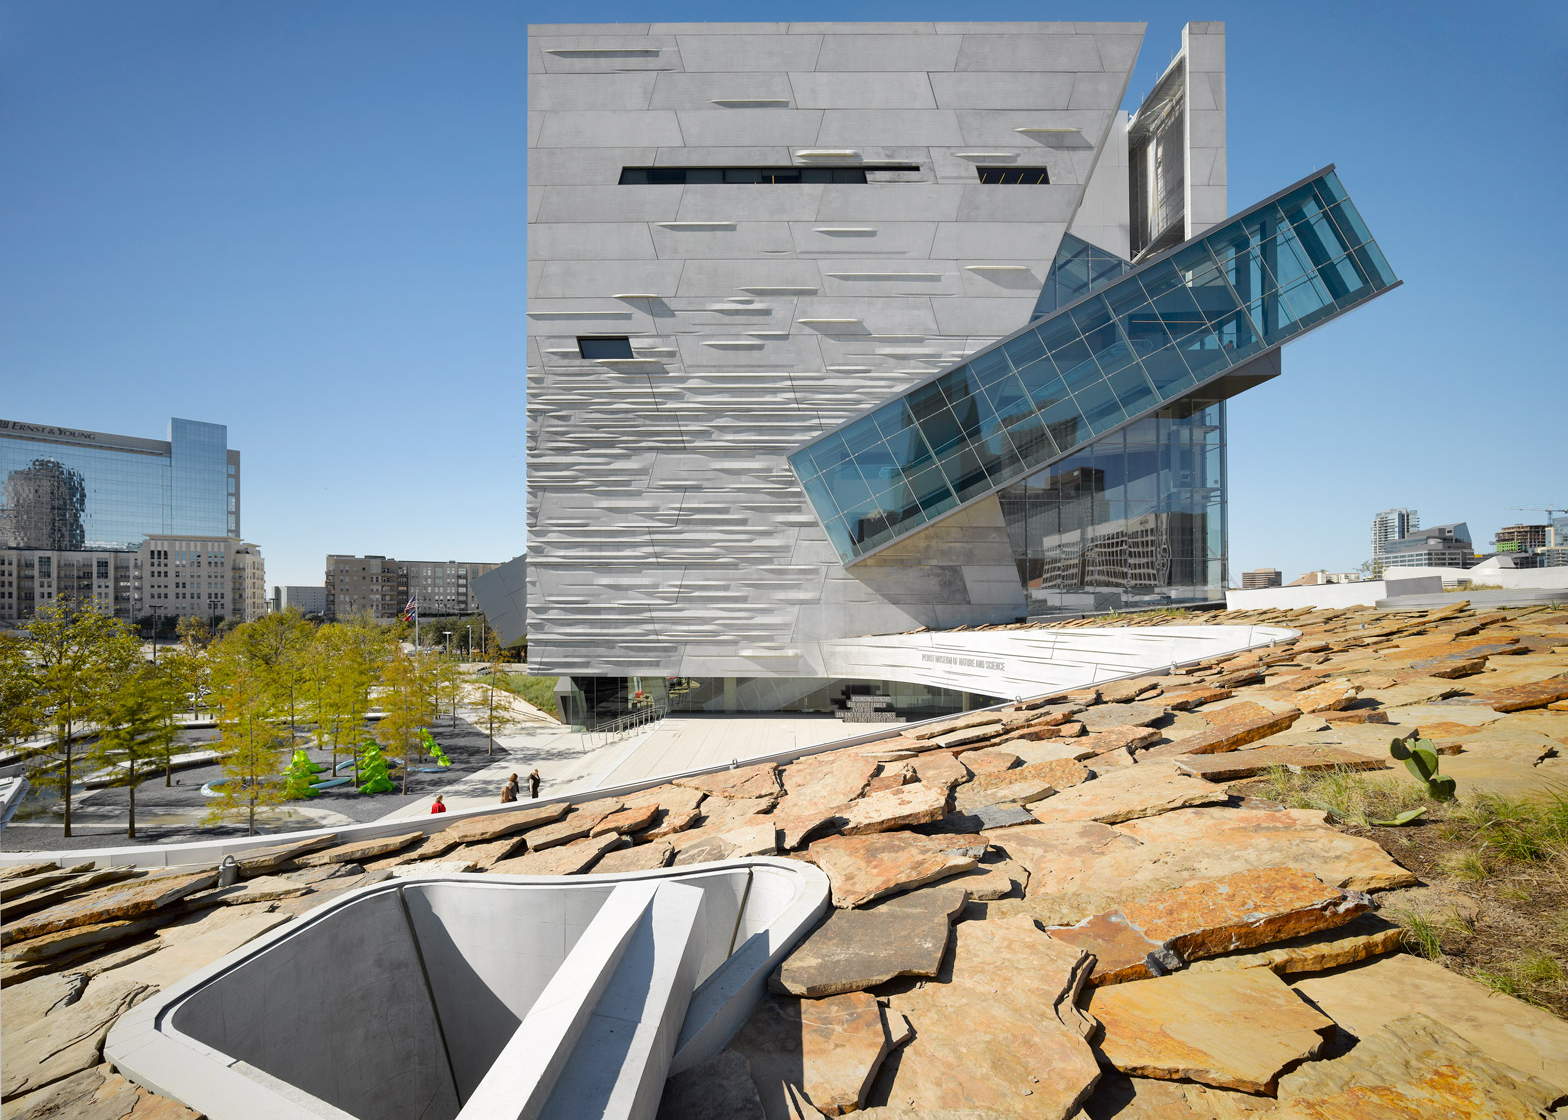 Perot Museum of Nature and Science; Dallas, Texas; by Morphosis Architects (with associate architect Good Fulton & Farrell)